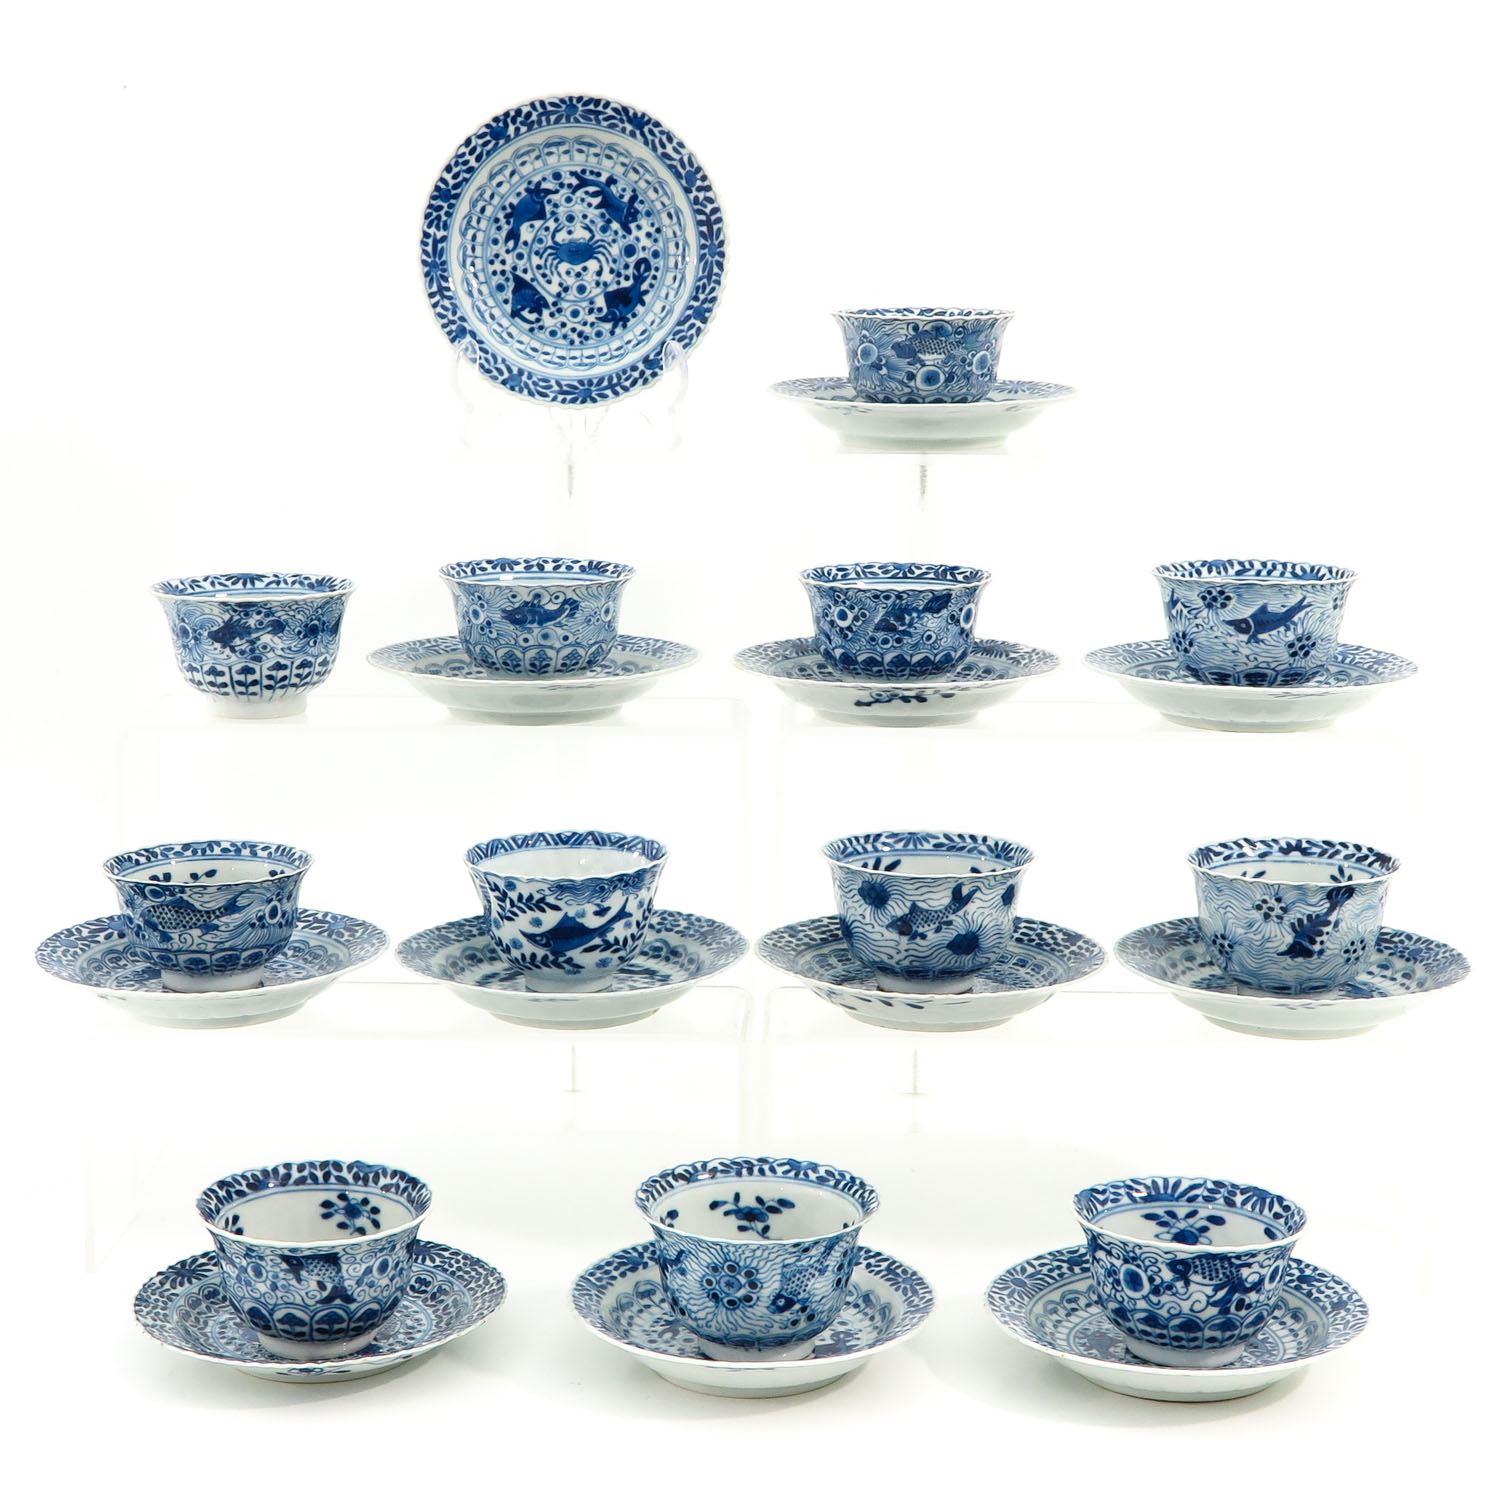 A Series of 12 Cups and Saucers